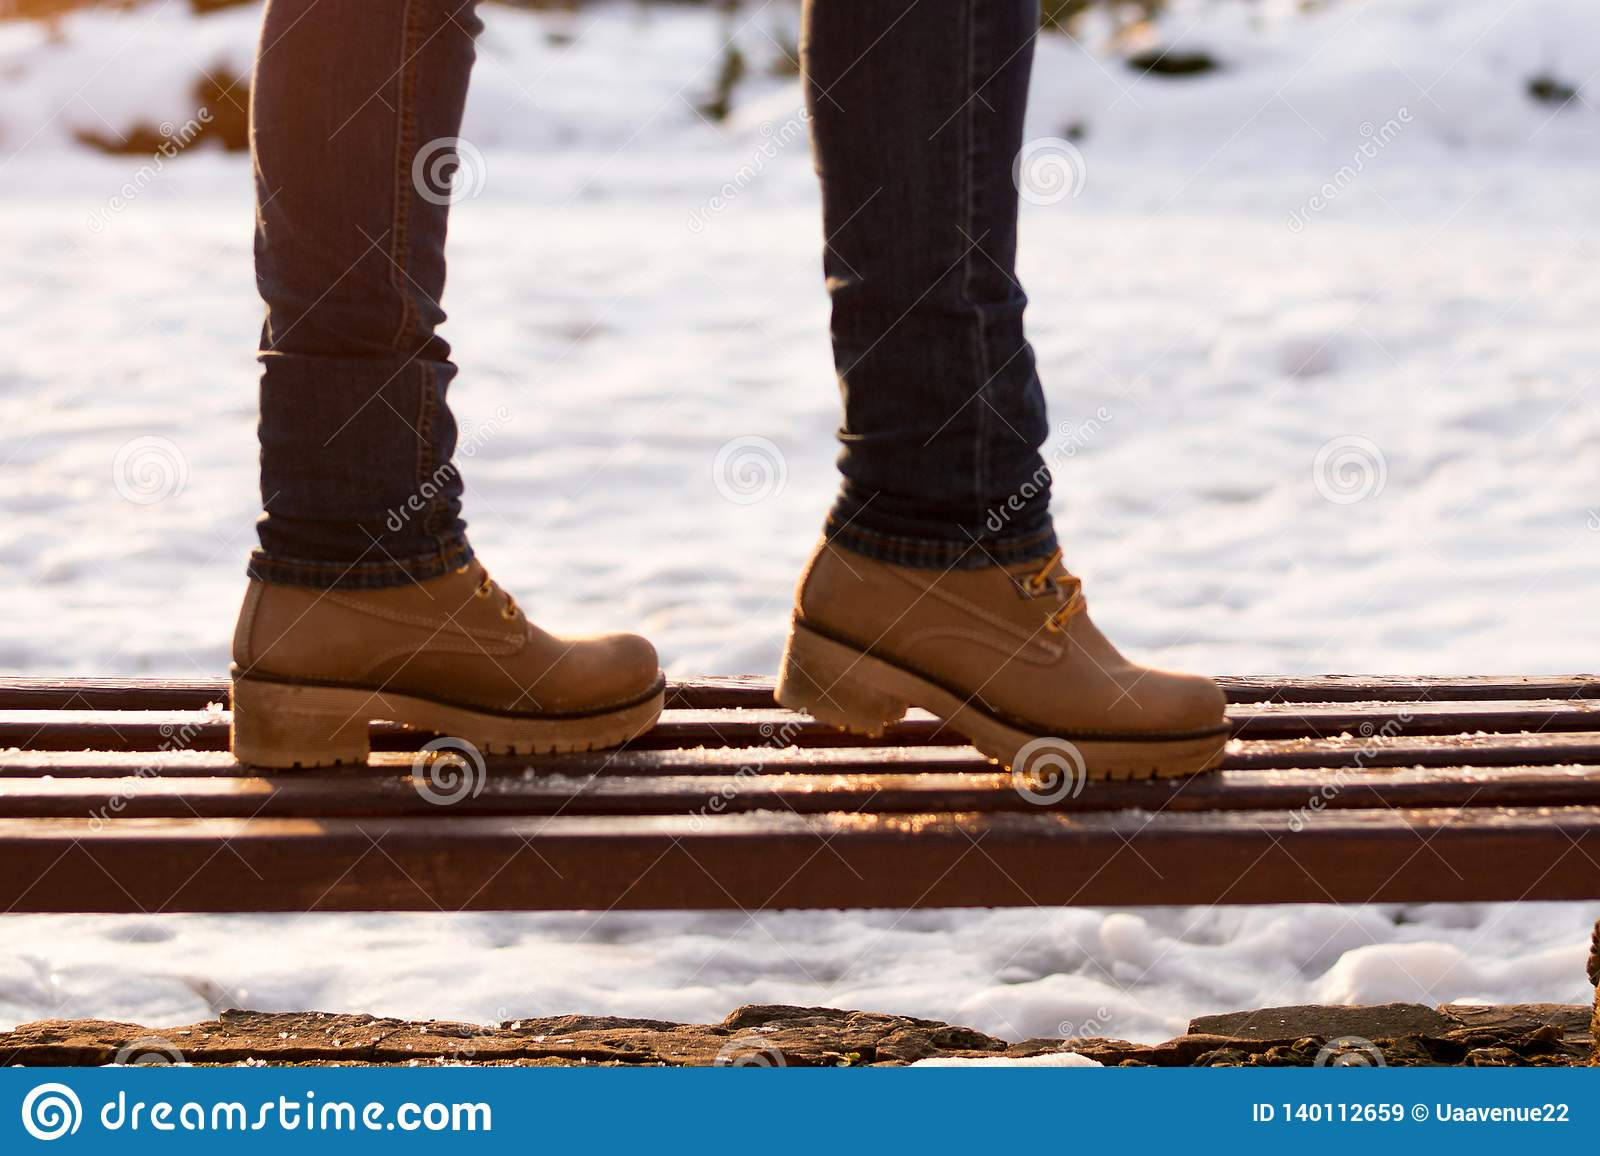 Closeup girls legs on bench in winter sunny day on blurred background. Romantic walking in park in casual style outerwear. Concept